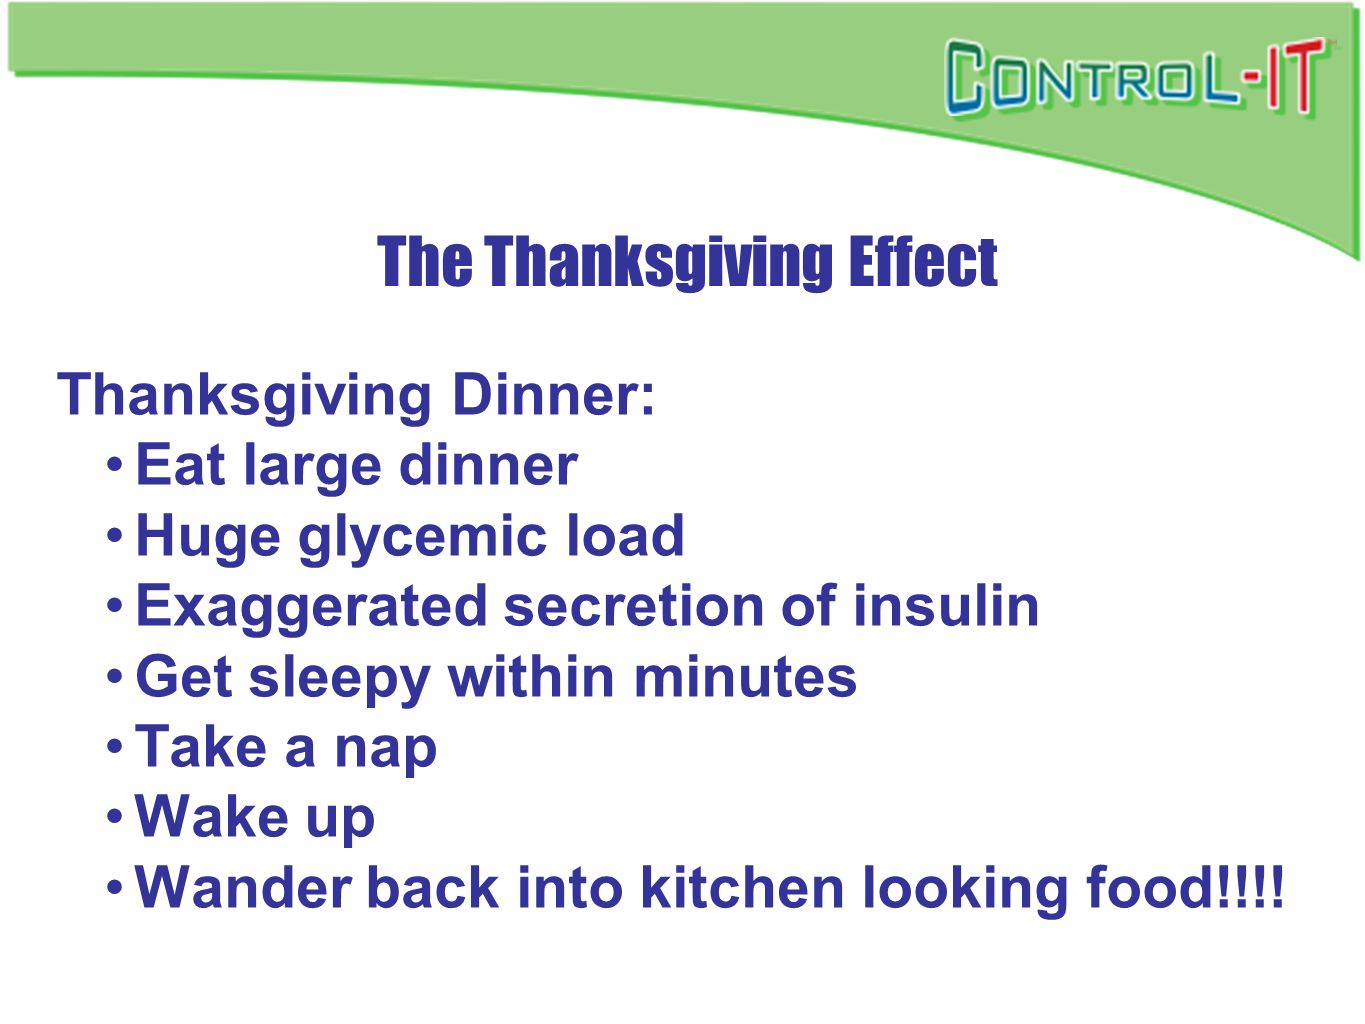 The Thanksgiving Effect